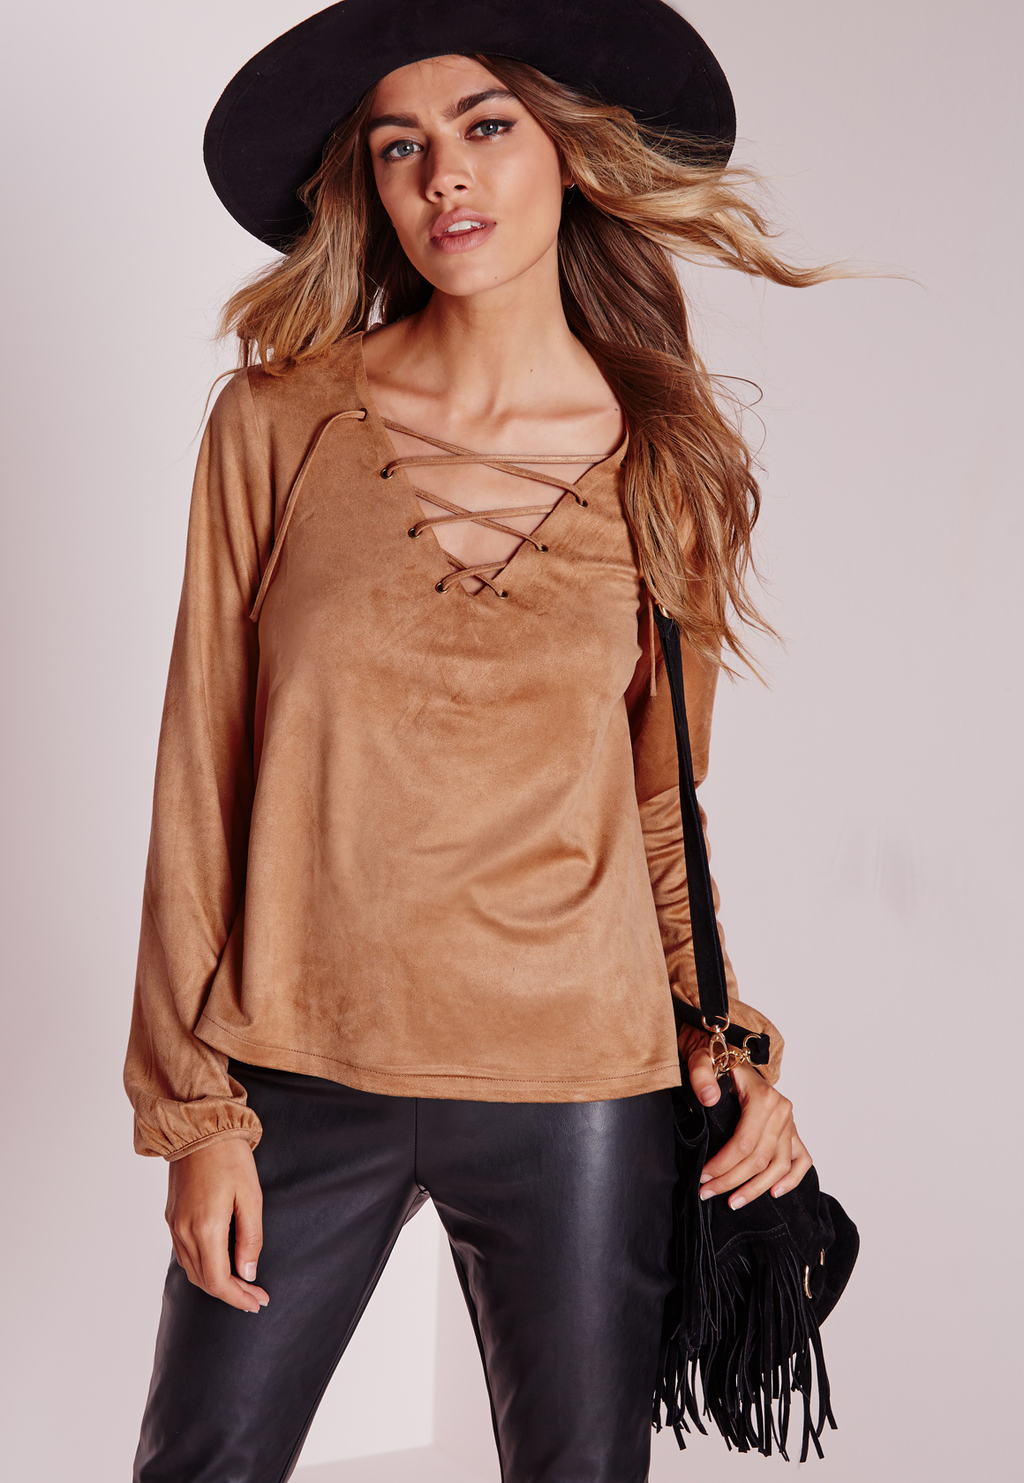 Faux Suede Lace Up Blouse Tan, Brown - neckline: low v-neck; pattern: plain; bust detail: added detail/embellishment at bust; sleeve style: balloon; style: blouse; predominant colour: camel; occasions: casual, creative work; length: standard; fibres: polyester/polyamide - 100%; fit: body skimming; sleeve length: long sleeve; pattern type: fabric; texture group: velvet/fabrics with pile; season: a/w 2015; wardrobe: highlight